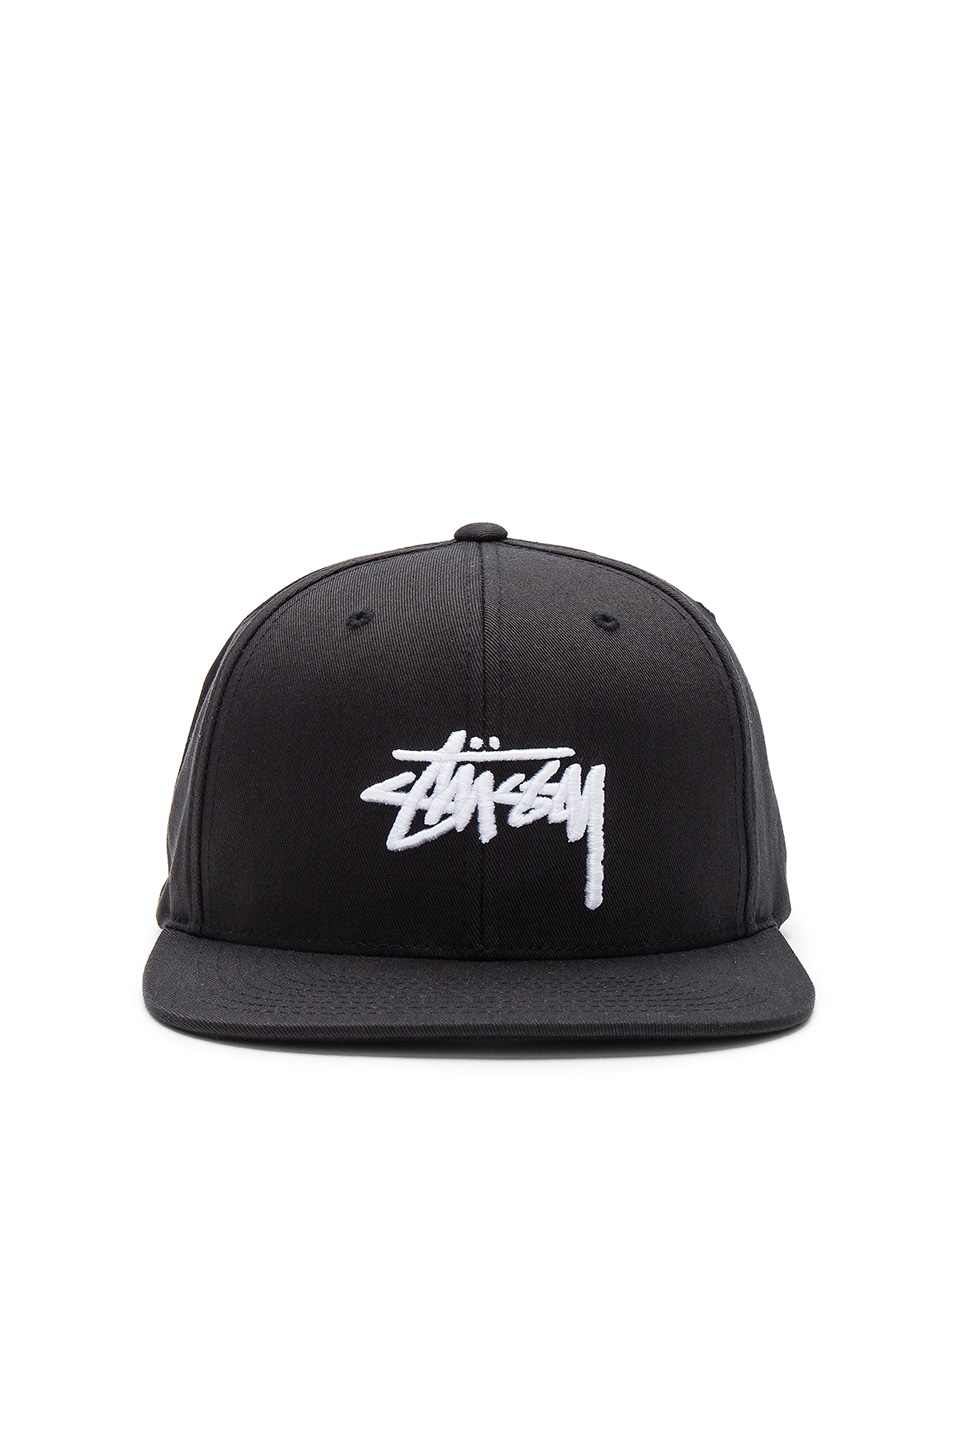 Stussy Stock SP17 Snapback in Black